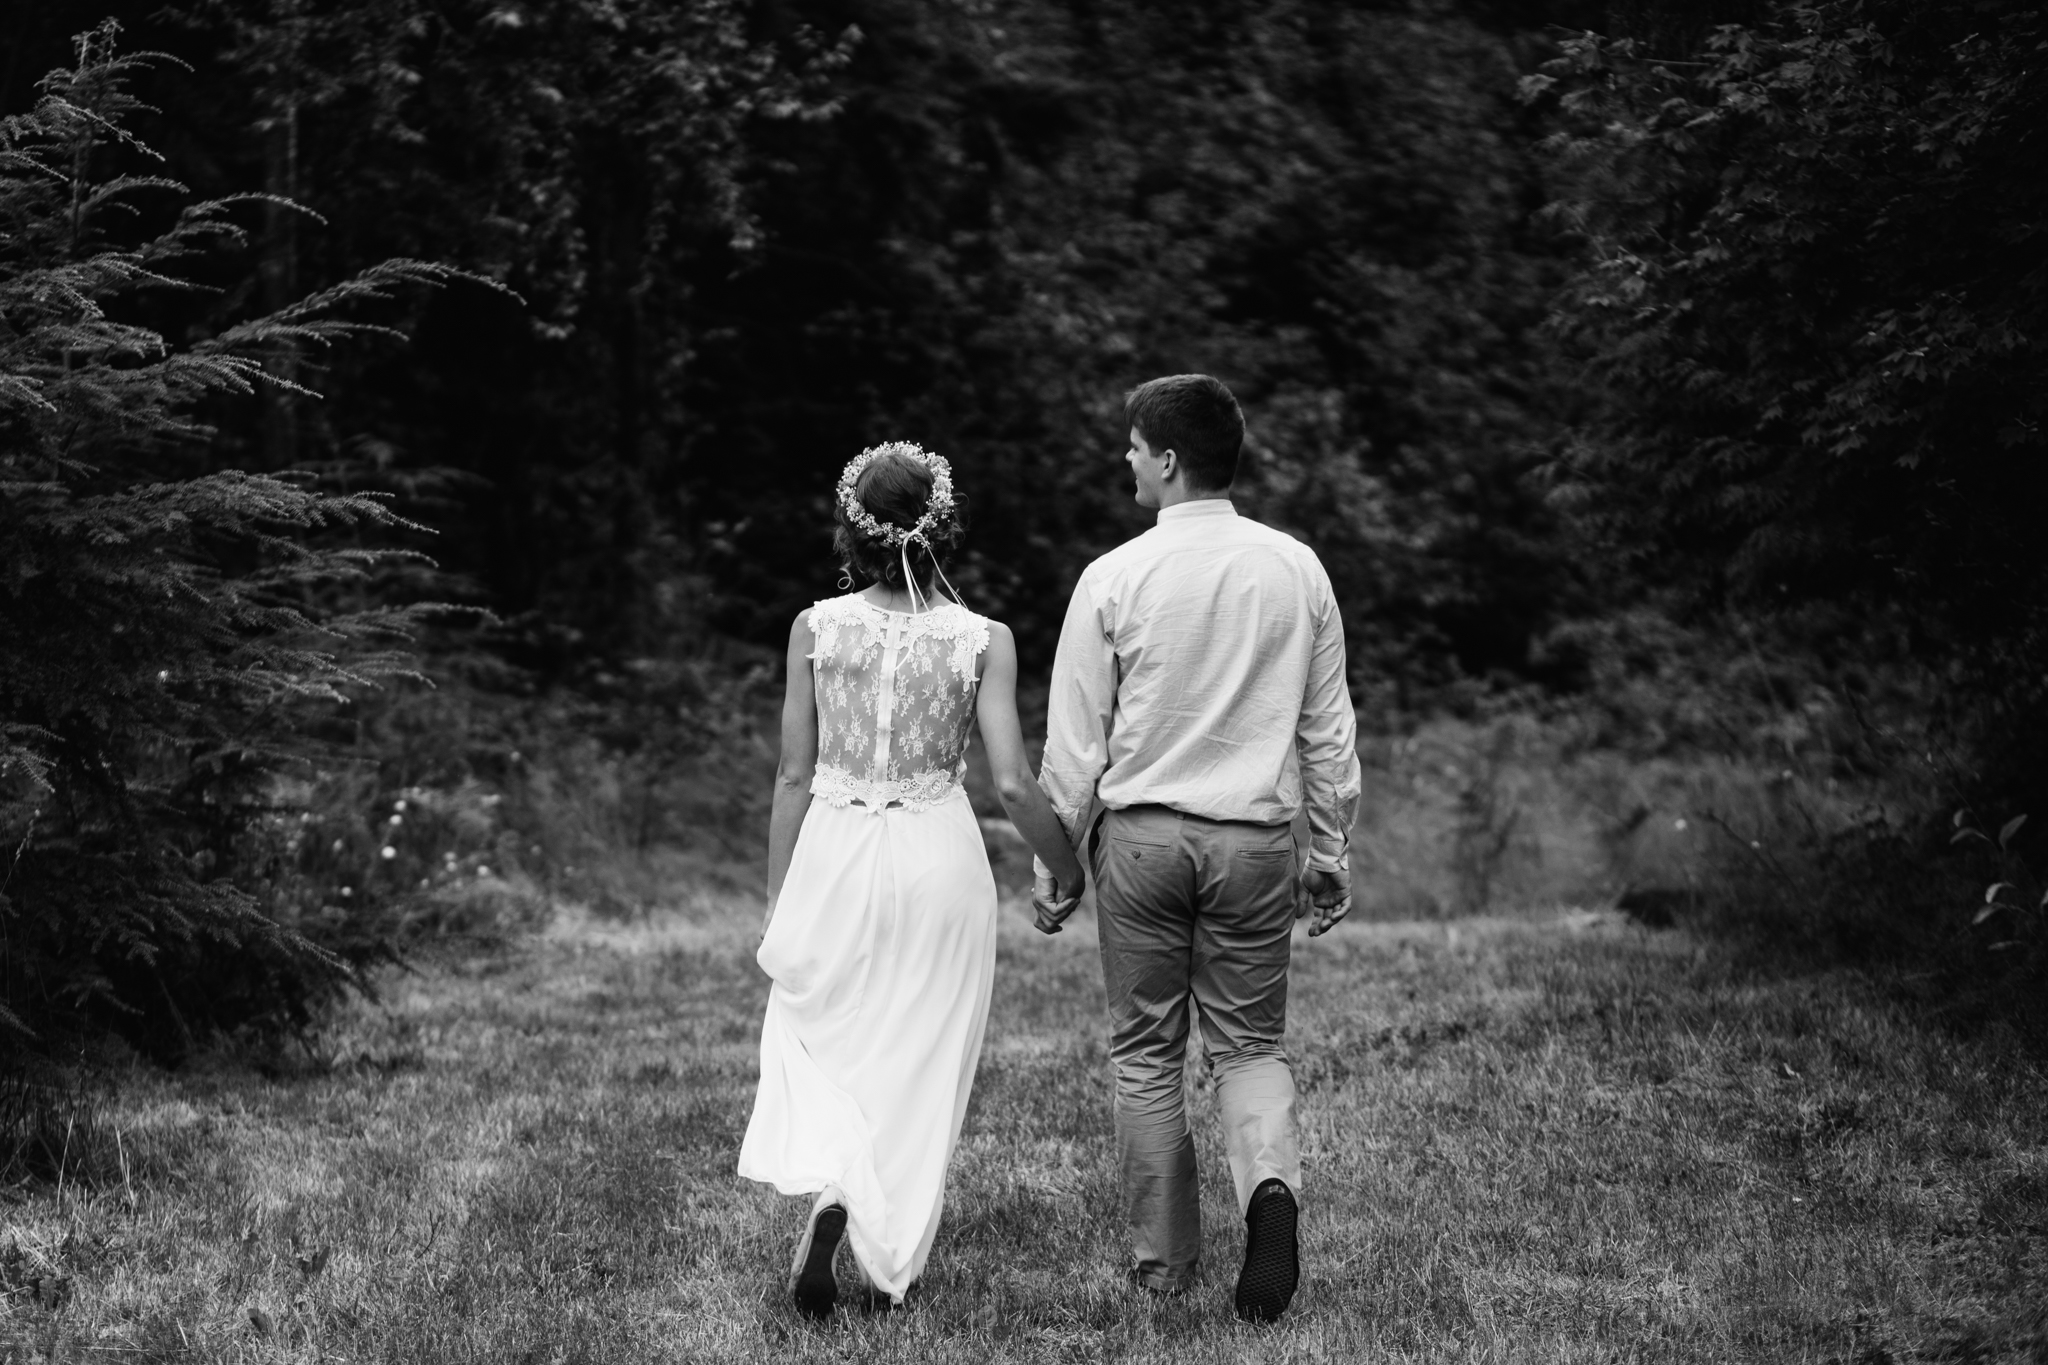 Vancouver Love Story Photographer - Emmy Lou Virginia Photography-28.jpg